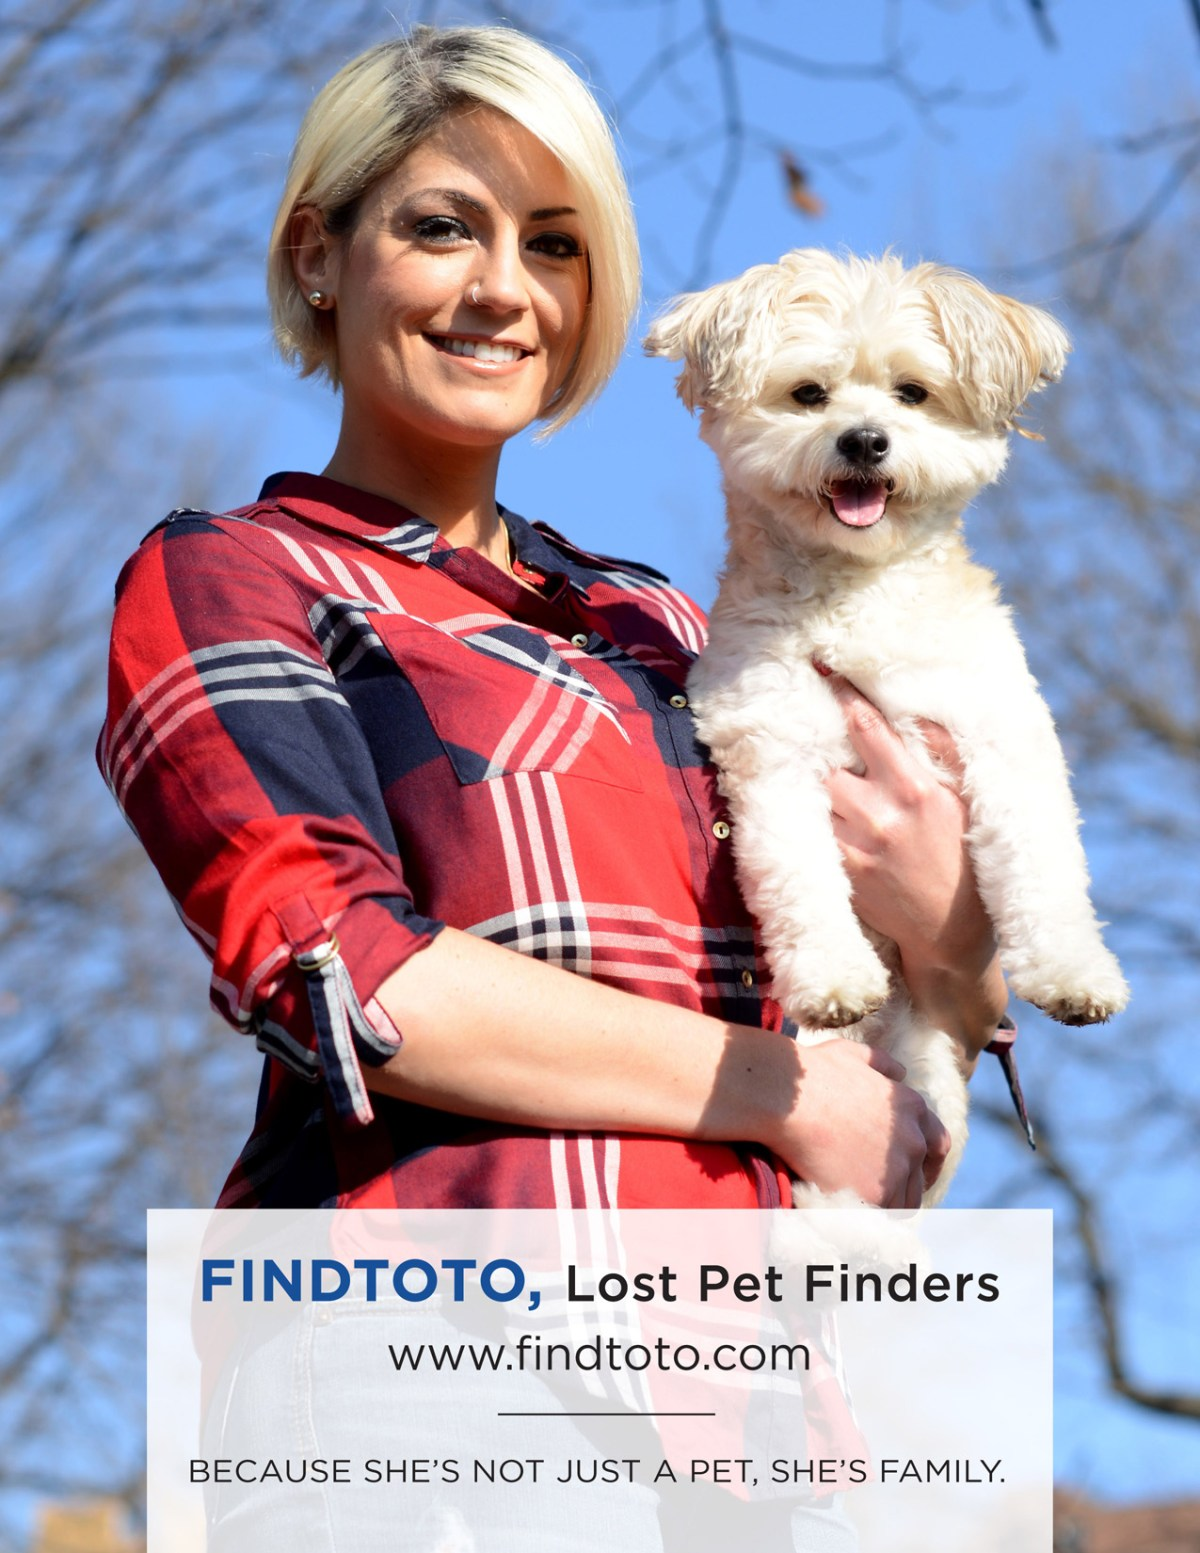 FindToto